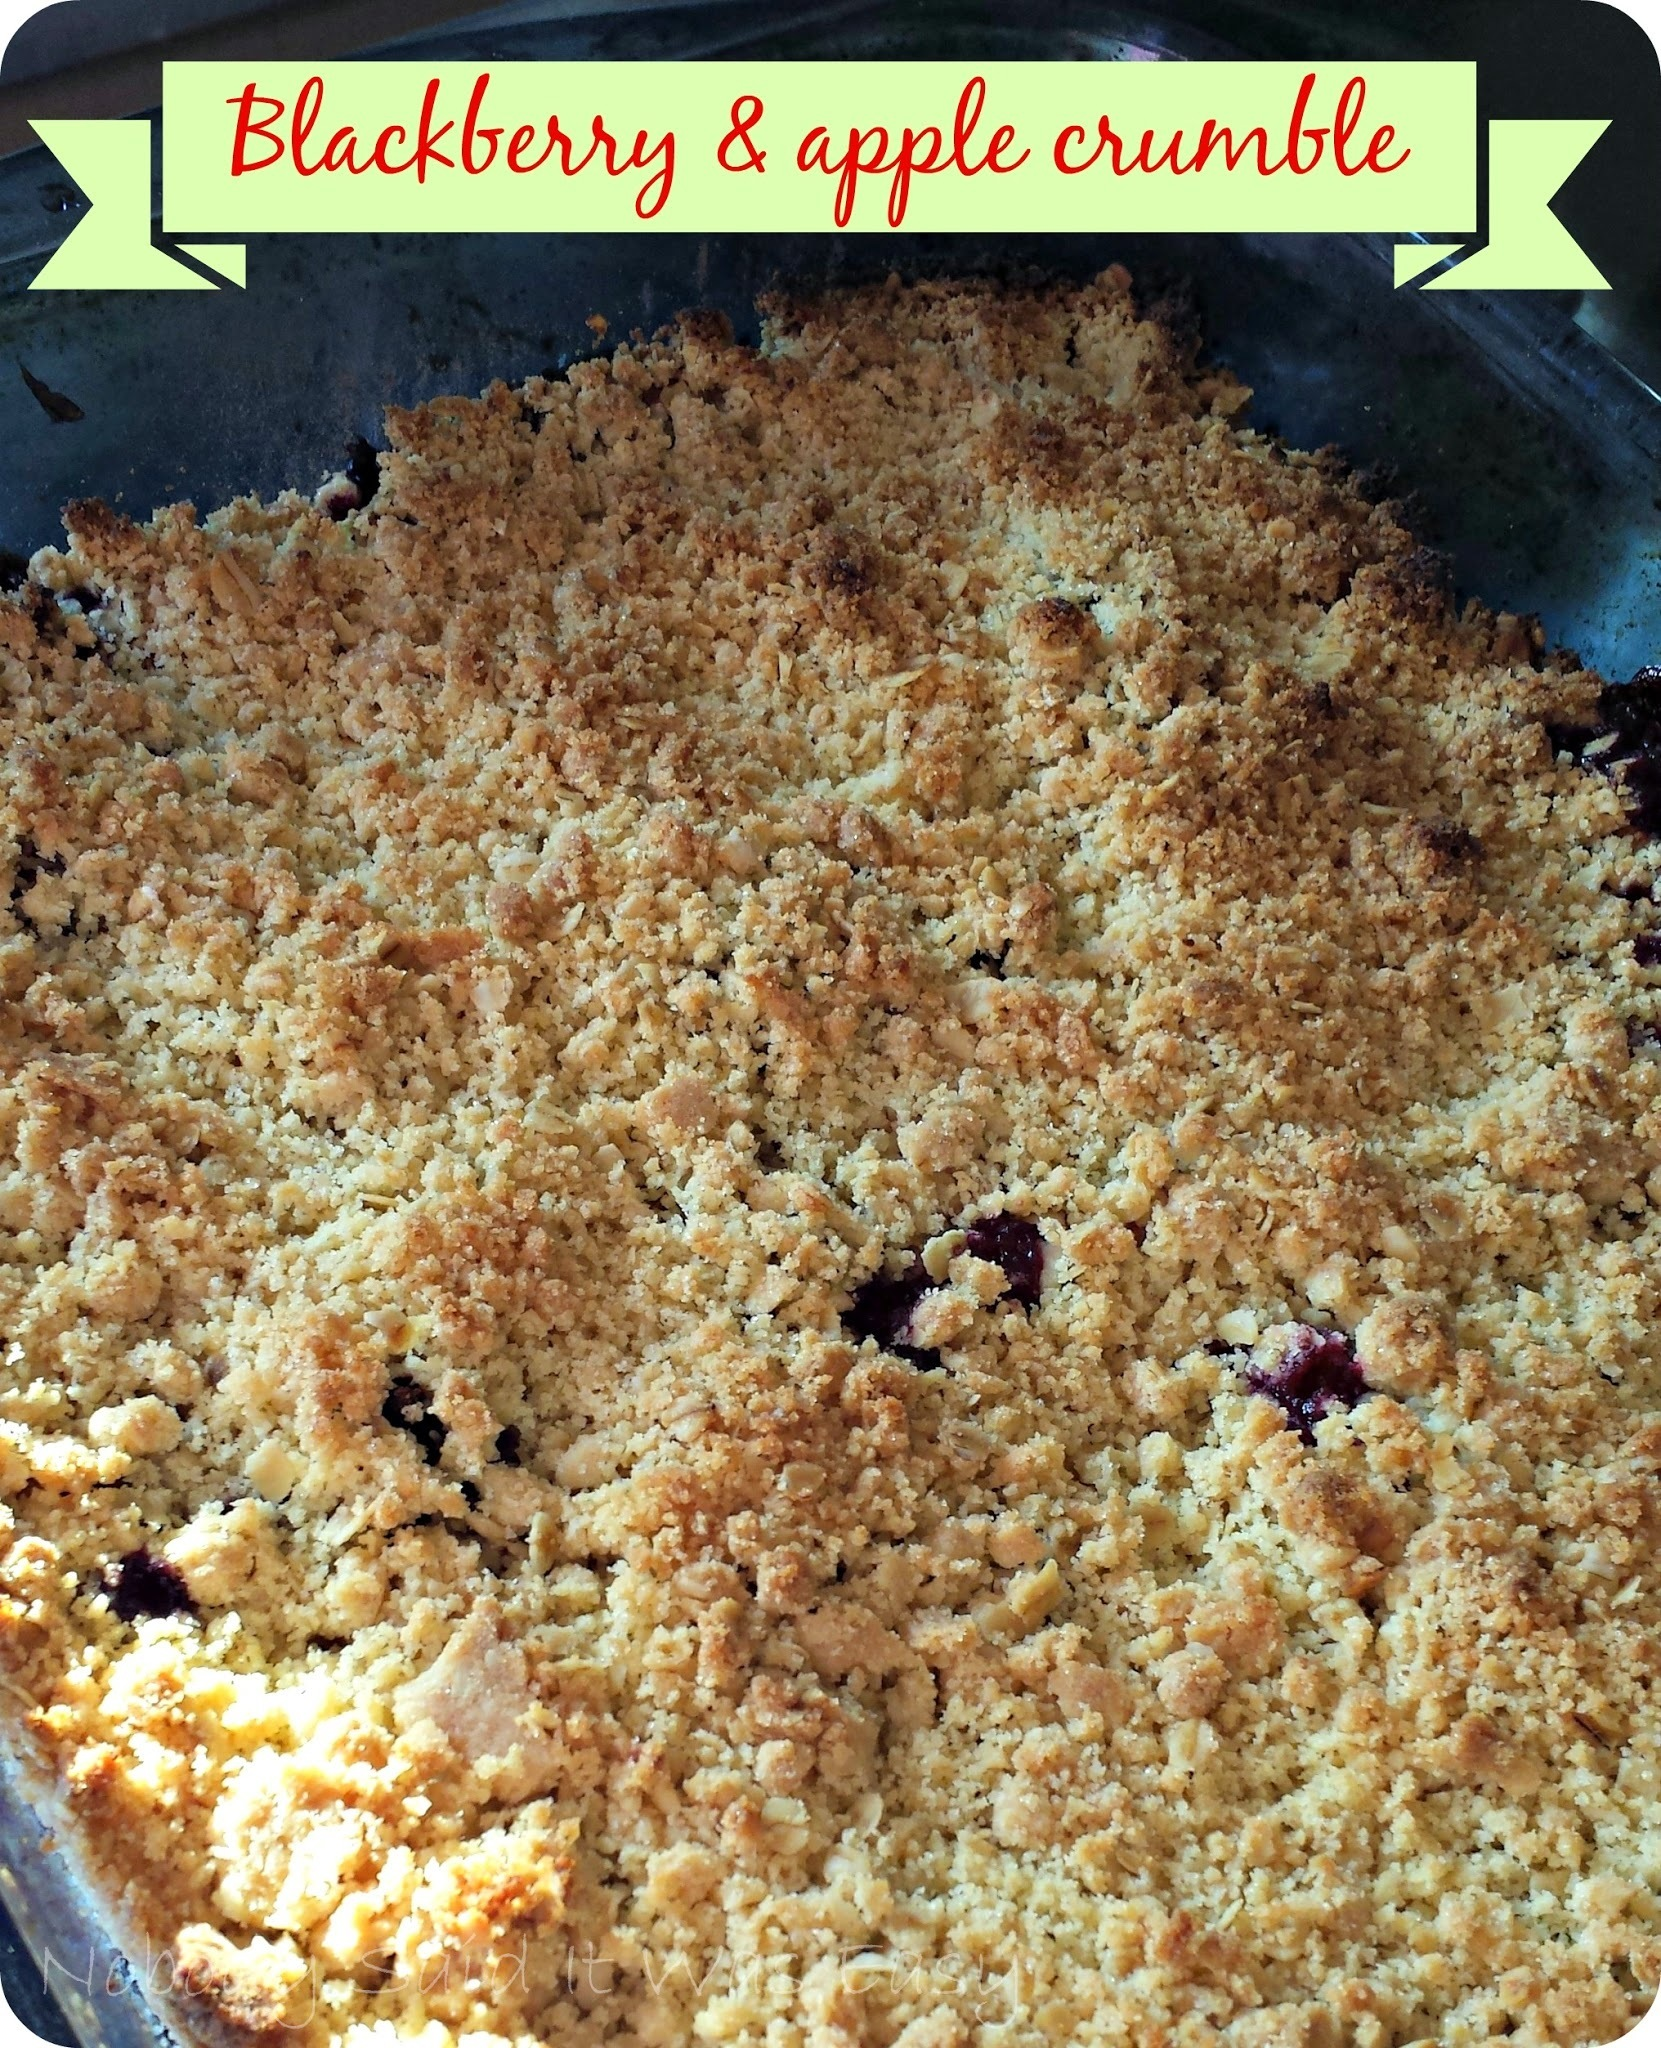 Recipe - Blackberry & apple crumble (#GreatBloggersBakeOff2014)